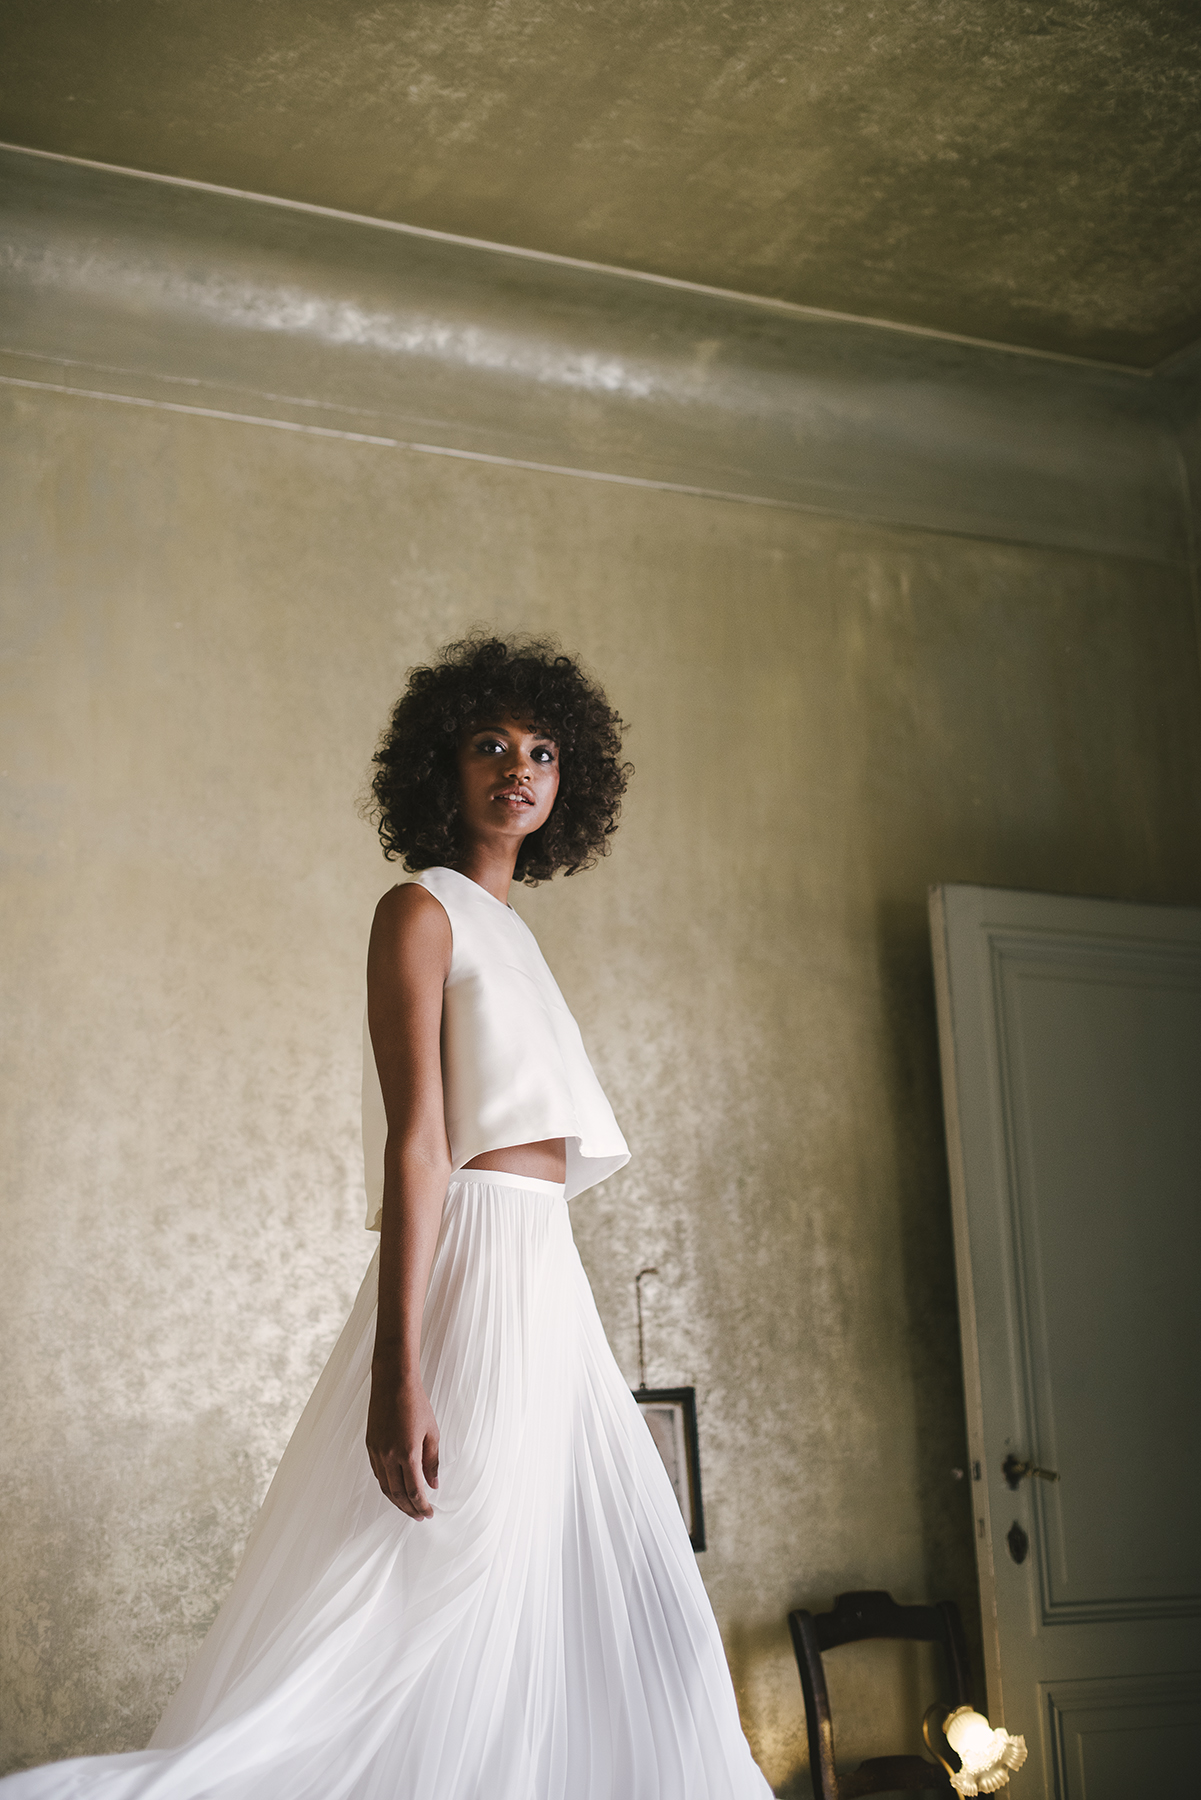 valentine-avoh-robe-mariee-ella-wedding-dress-bruxelles-photo-elodie-timmermans-50.jpg